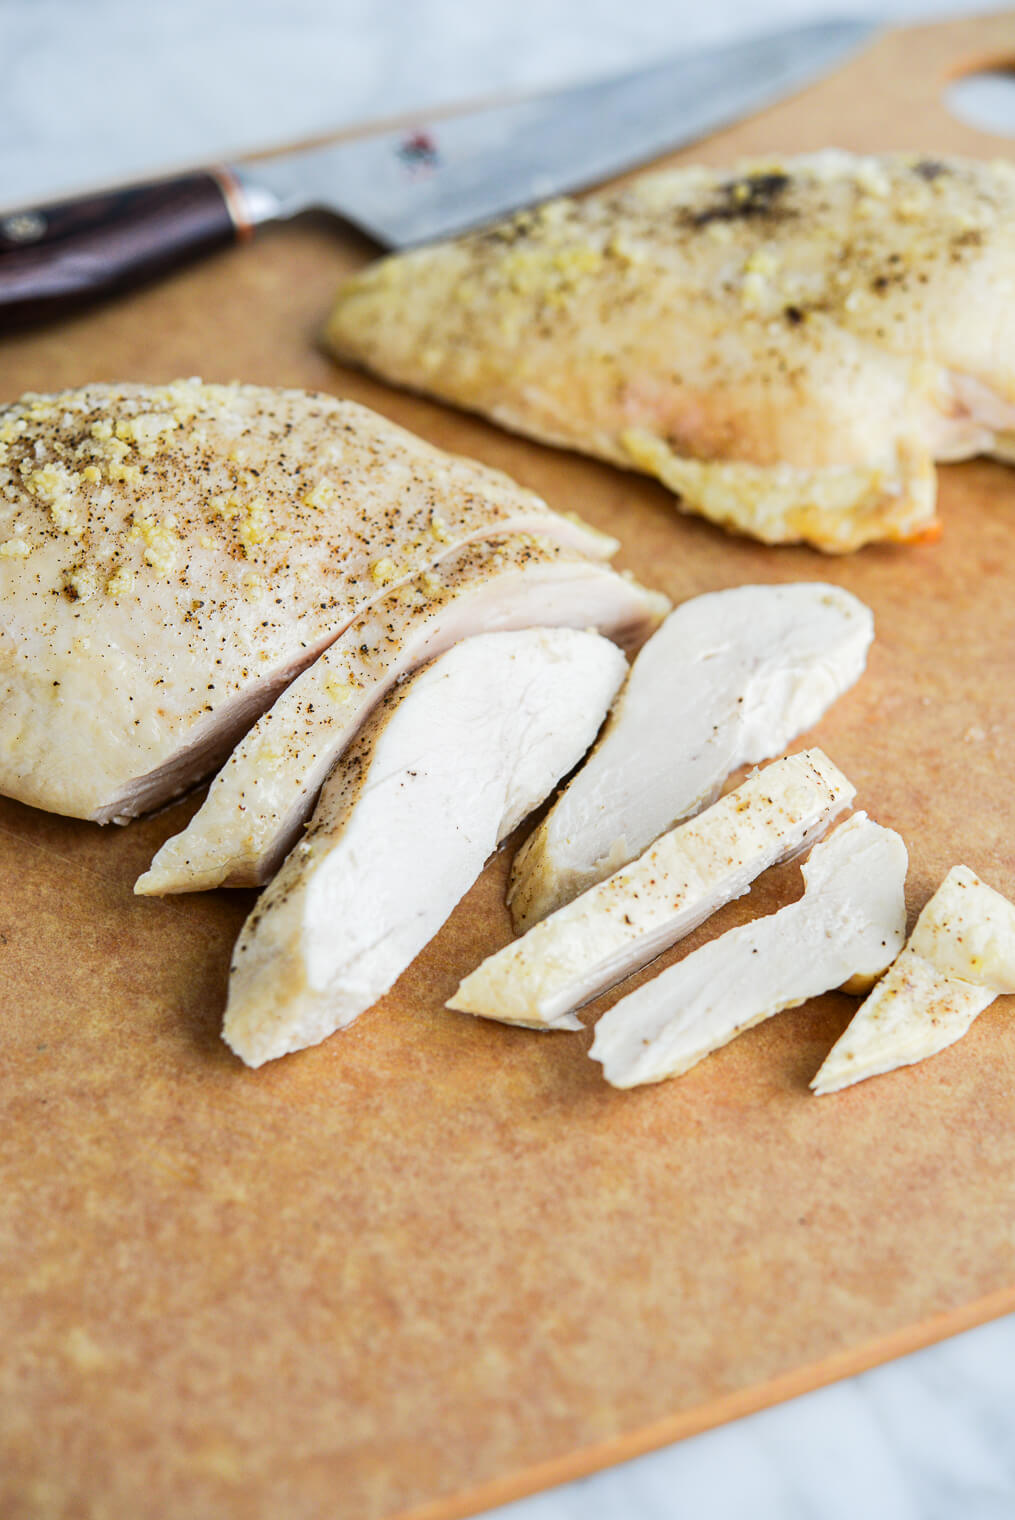 two baked chicken breasts (one sliced and one left whole) sitting on a cutting board next to a knife